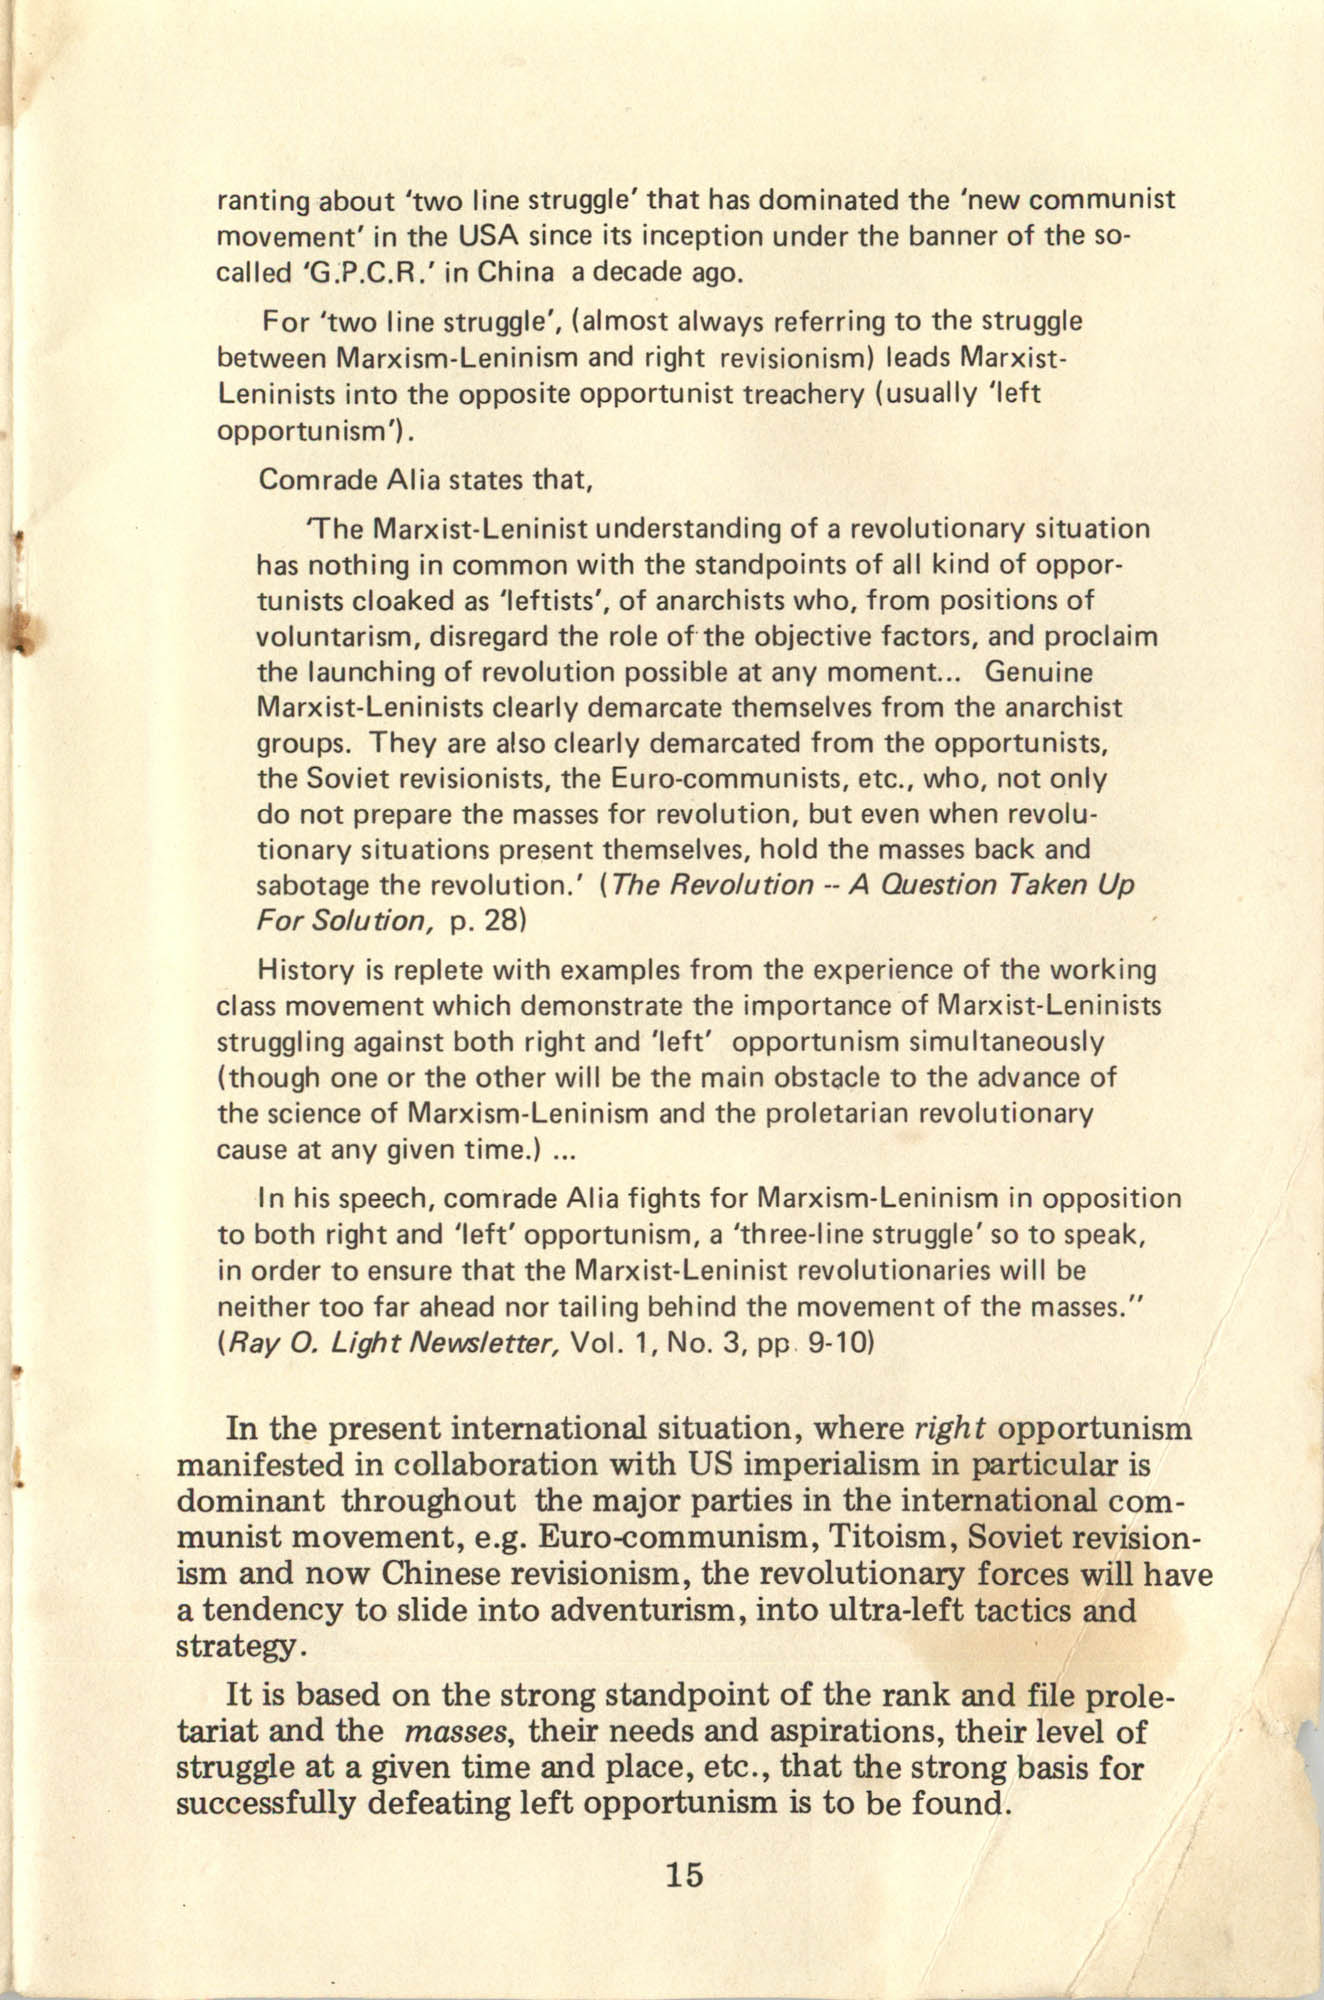 Ray O. Light Newsletter, Volume 1, Number 4, Page 15